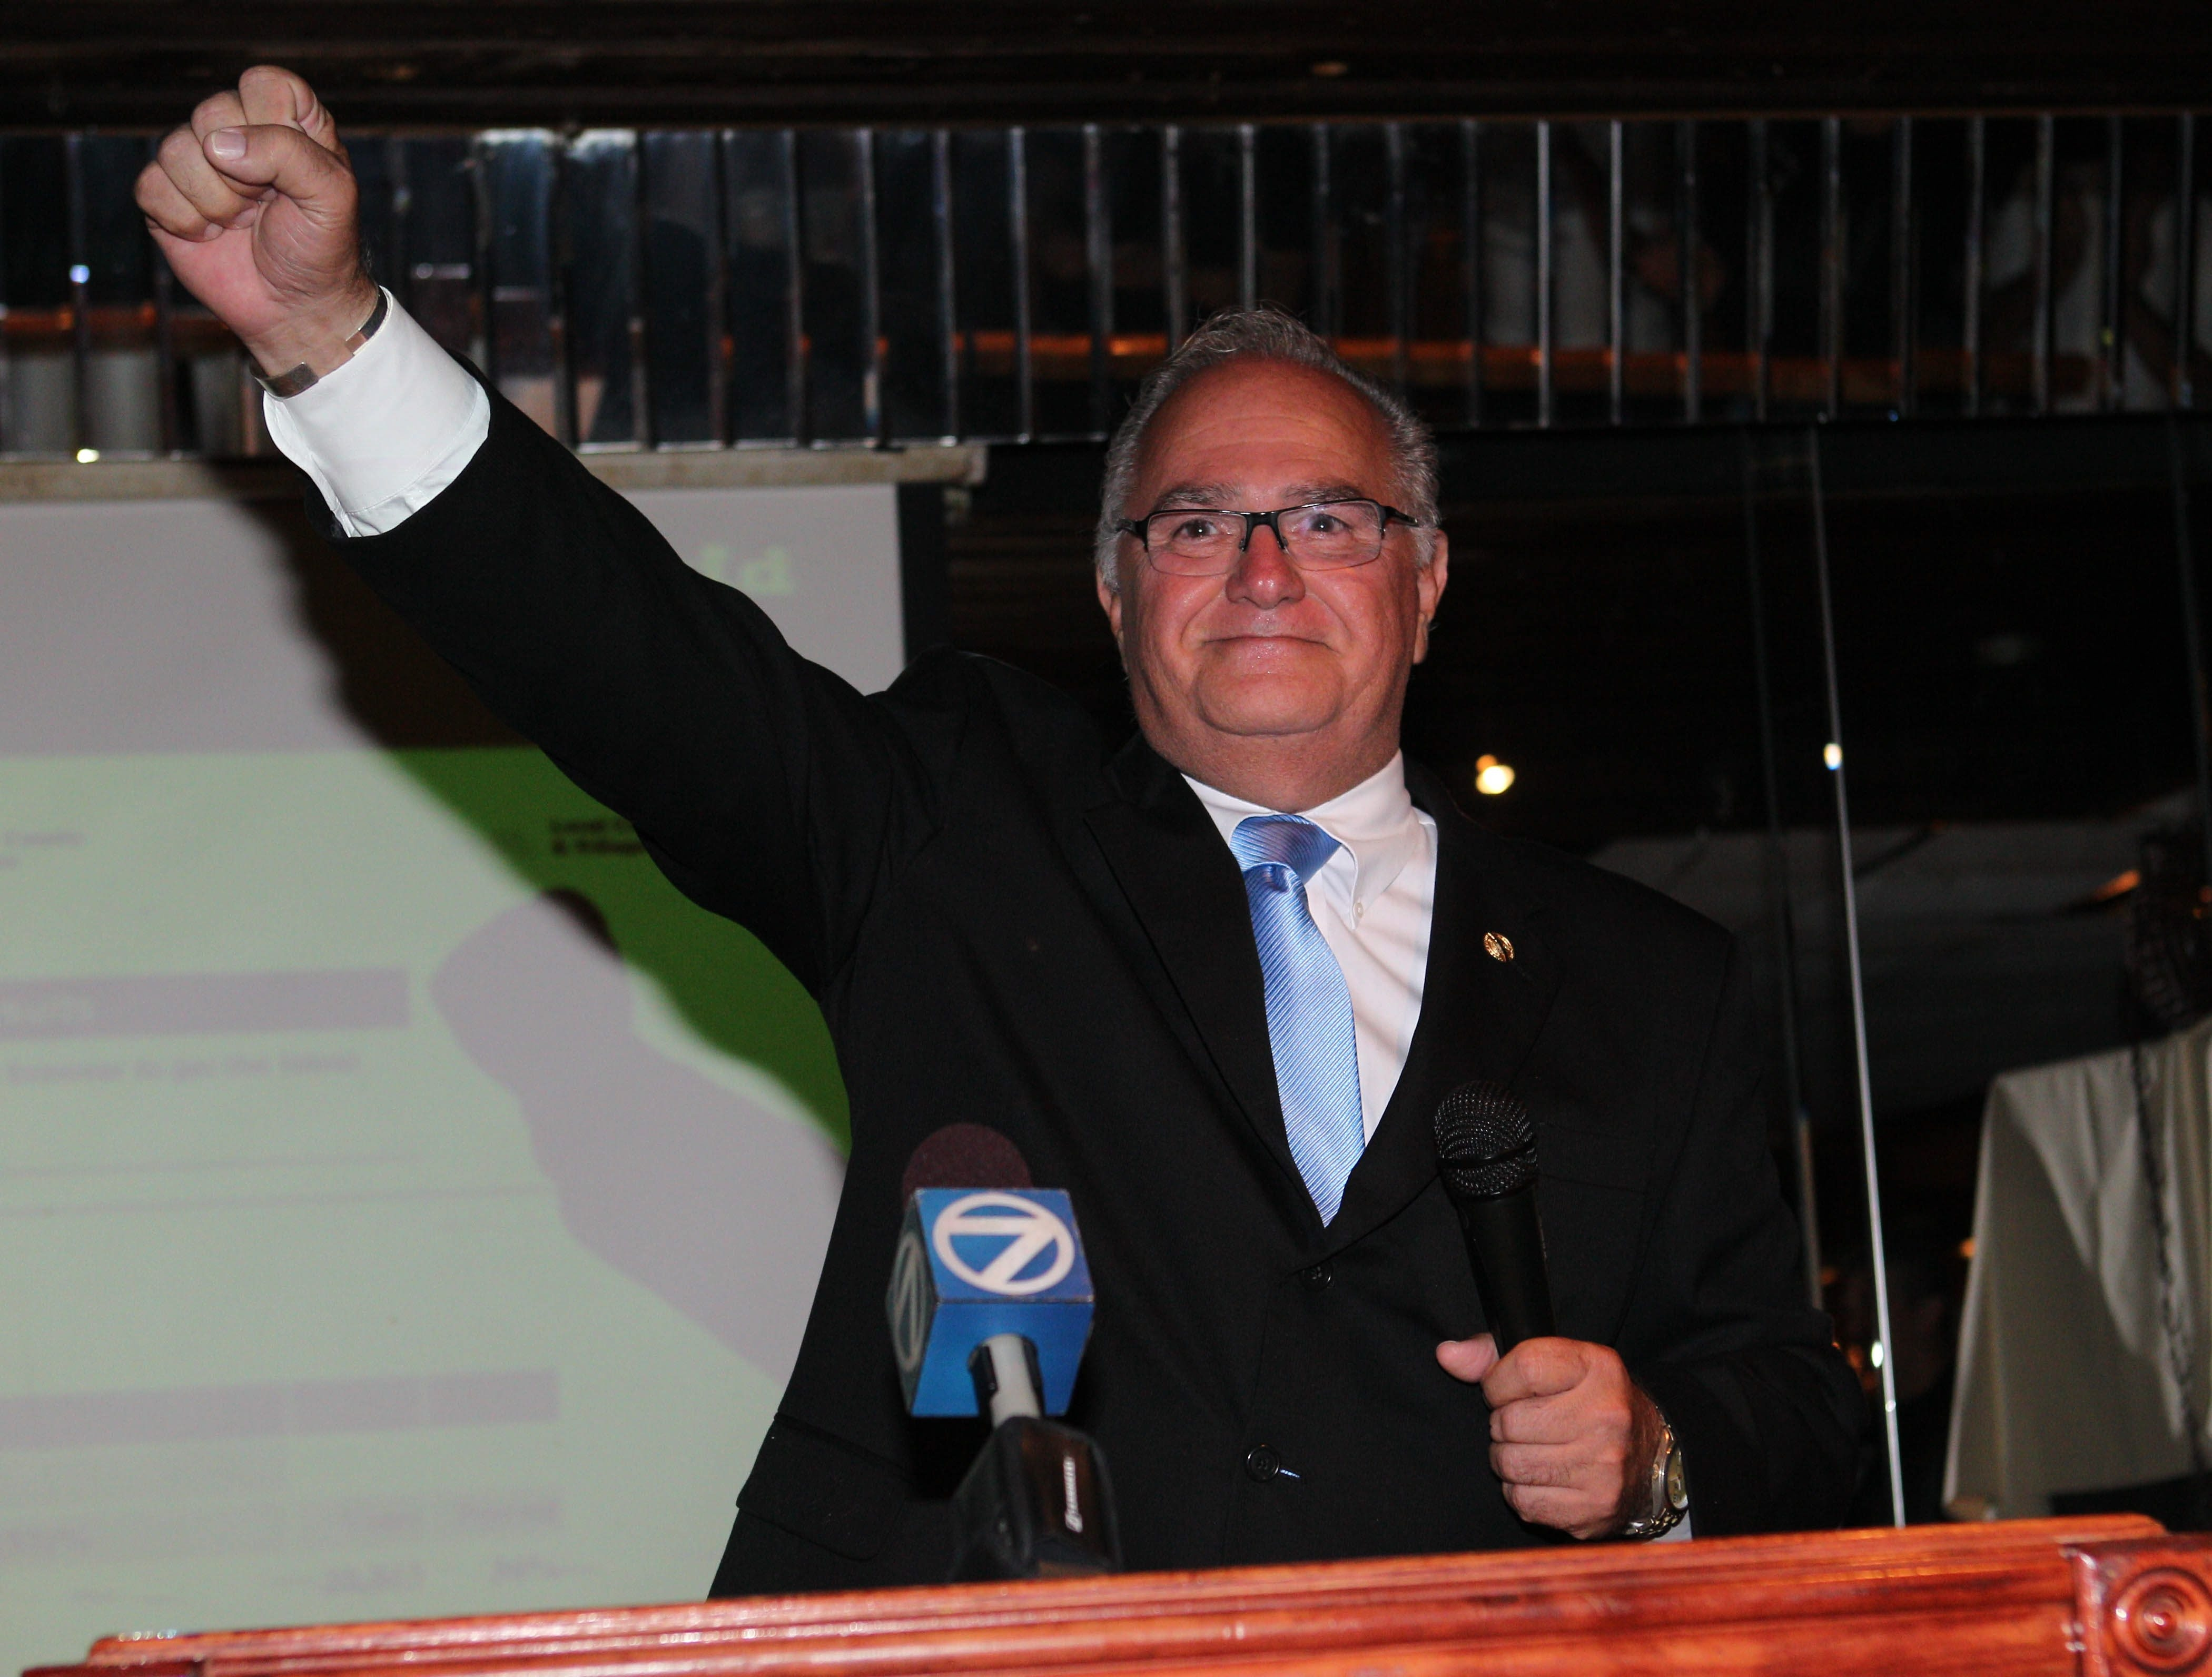 Richard E. Dobson, candidate for Erie County sheriff, declares victory in the Democratic primary against Bert D. Dunn on Tuesday.